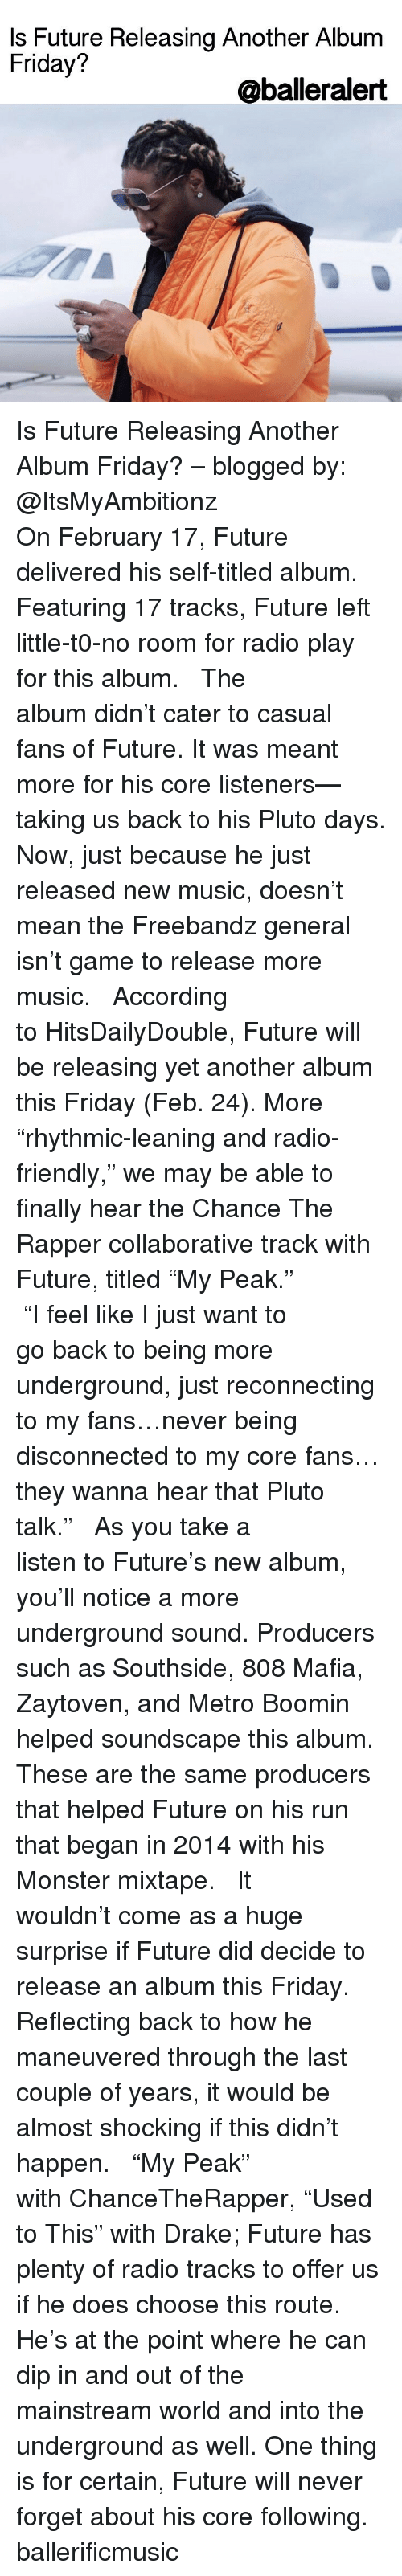 """Memes, Metro Boomin, and Metro: Is Future Releasing Another Album  Friday?  @balleralert Is Future Releasing Another Album Friday? – blogged by: @ItsMyAmbitionz ⠀⠀⠀⠀⠀⠀⠀⠀⠀ ⠀⠀⠀⠀⠀⠀⠀⠀⠀ On February 17, Future delivered his self-titled album. Featuring 17 tracks, Future left little-t0-no room for radio play for this album. ⠀⠀⠀⠀⠀⠀⠀⠀⠀ ⠀⠀⠀⠀⠀⠀⠀⠀⠀ The album didn't cater to casual fans of Future. It was meant more for his core listeners—taking us back to his Pluto days. Now, just because he just released new music, doesn't mean the Freebandz general isn't game to release more music. ⠀⠀⠀⠀⠀⠀⠀⠀⠀ ⠀⠀⠀⠀⠀⠀⠀⠀⠀ According to HitsDailyDouble, Future will be releasing yet another album this Friday (Feb. 24). More """"rhythmic-leaning and radio-friendly,"""" we may be able to finally hear the Chance The Rapper collaborative track with Future, titled """"My Peak."""" ⠀⠀⠀⠀⠀⠀⠀⠀⠀ ⠀⠀⠀⠀⠀⠀⠀⠀⠀ """"I feel like I just want to go back to being more underground, just reconnecting to my fans…never being disconnected to my core fans…they wanna hear that Pluto talk."""" ⠀⠀⠀⠀⠀⠀⠀⠀⠀ ⠀⠀⠀⠀⠀⠀⠀⠀⠀ As you take a listen to Future's new album, you'll notice a more underground sound. Producers such as Southside, 808 Mafia, Zaytoven, and Metro Boomin helped soundscape this album. These are the same producers that helped Future on his run that began in 2014 with his Monster mixtape. ⠀⠀⠀⠀⠀⠀⠀⠀⠀ ⠀⠀⠀⠀⠀⠀⠀⠀⠀ It wouldn't come as a huge surprise if Future did decide to release an album this Friday. Reflecting back to how he maneuvered through the last couple of years, it would be almost shocking if this didn't happen. ⠀⠀⠀⠀⠀⠀⠀⠀⠀ ⠀⠀⠀⠀⠀⠀⠀⠀⠀ """"My Peak"""" with ChanceTheRapper, """"Used to This"""" with Drake; Future has plenty of radio tracks to offer us if he does choose this route. He's at the point where he can dip in and out of the mainstream world and into the underground as well. One thing is for certain, Future will never forget about his core following. ballerificmusic"""